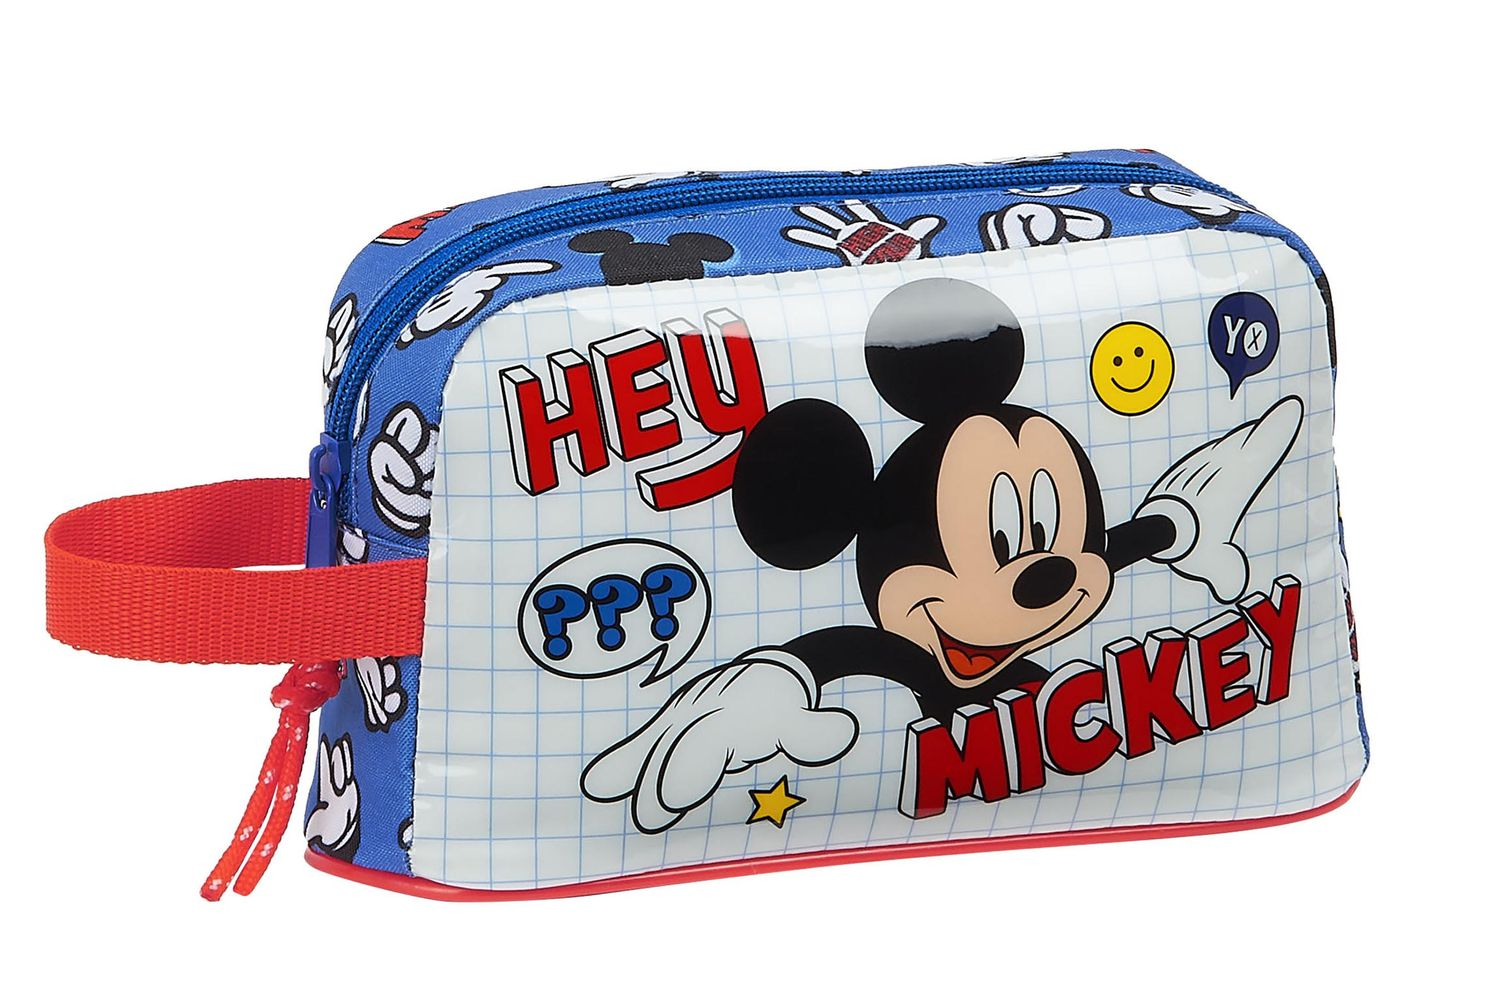 Disney MICKEY MOUSE THINGS Insulated Thermal Lunch Bag – image 1